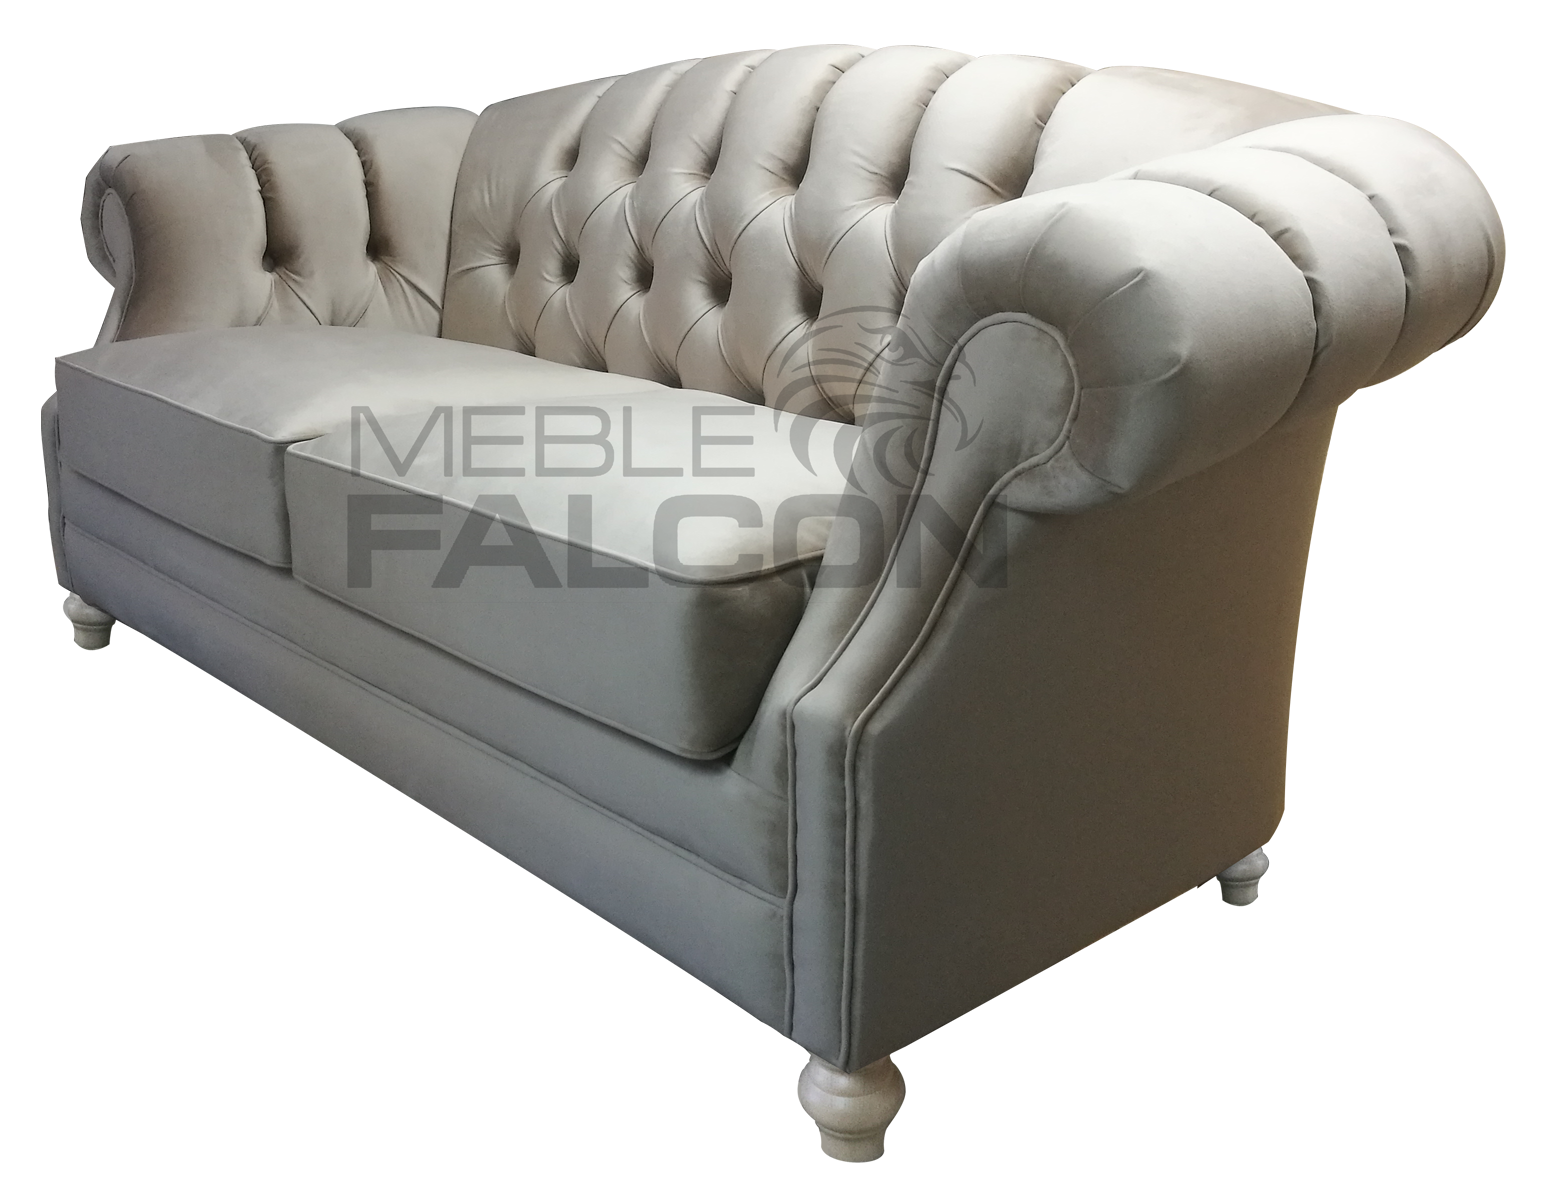 oryginalna sofa chesterfield beżowa producent